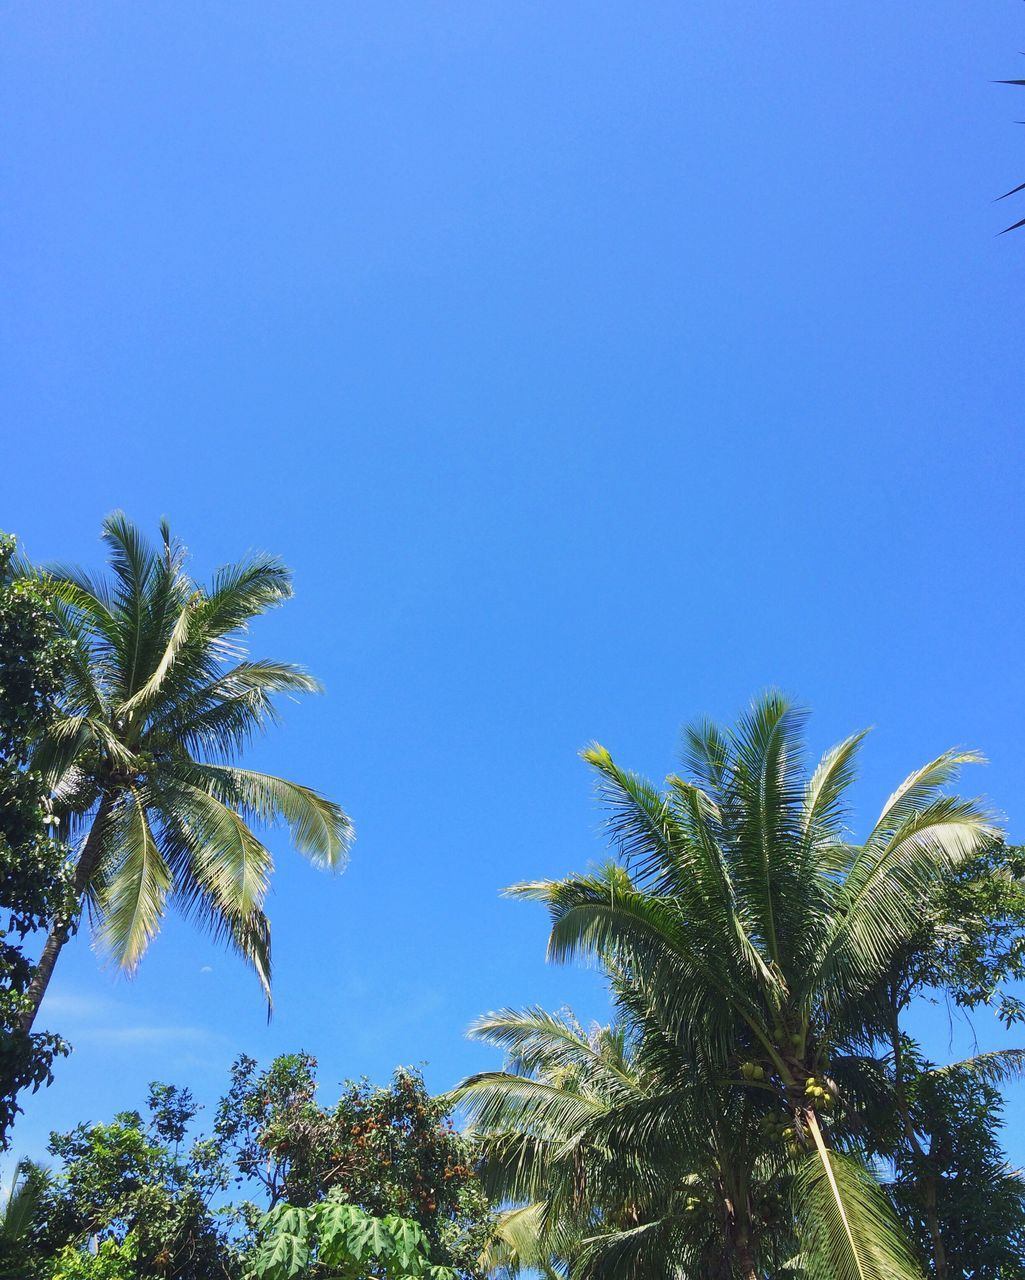 palm tree, clear sky, tree, nature, blue, low angle view, growth, day, no people, beauty in nature, outdoors, scenics, sky